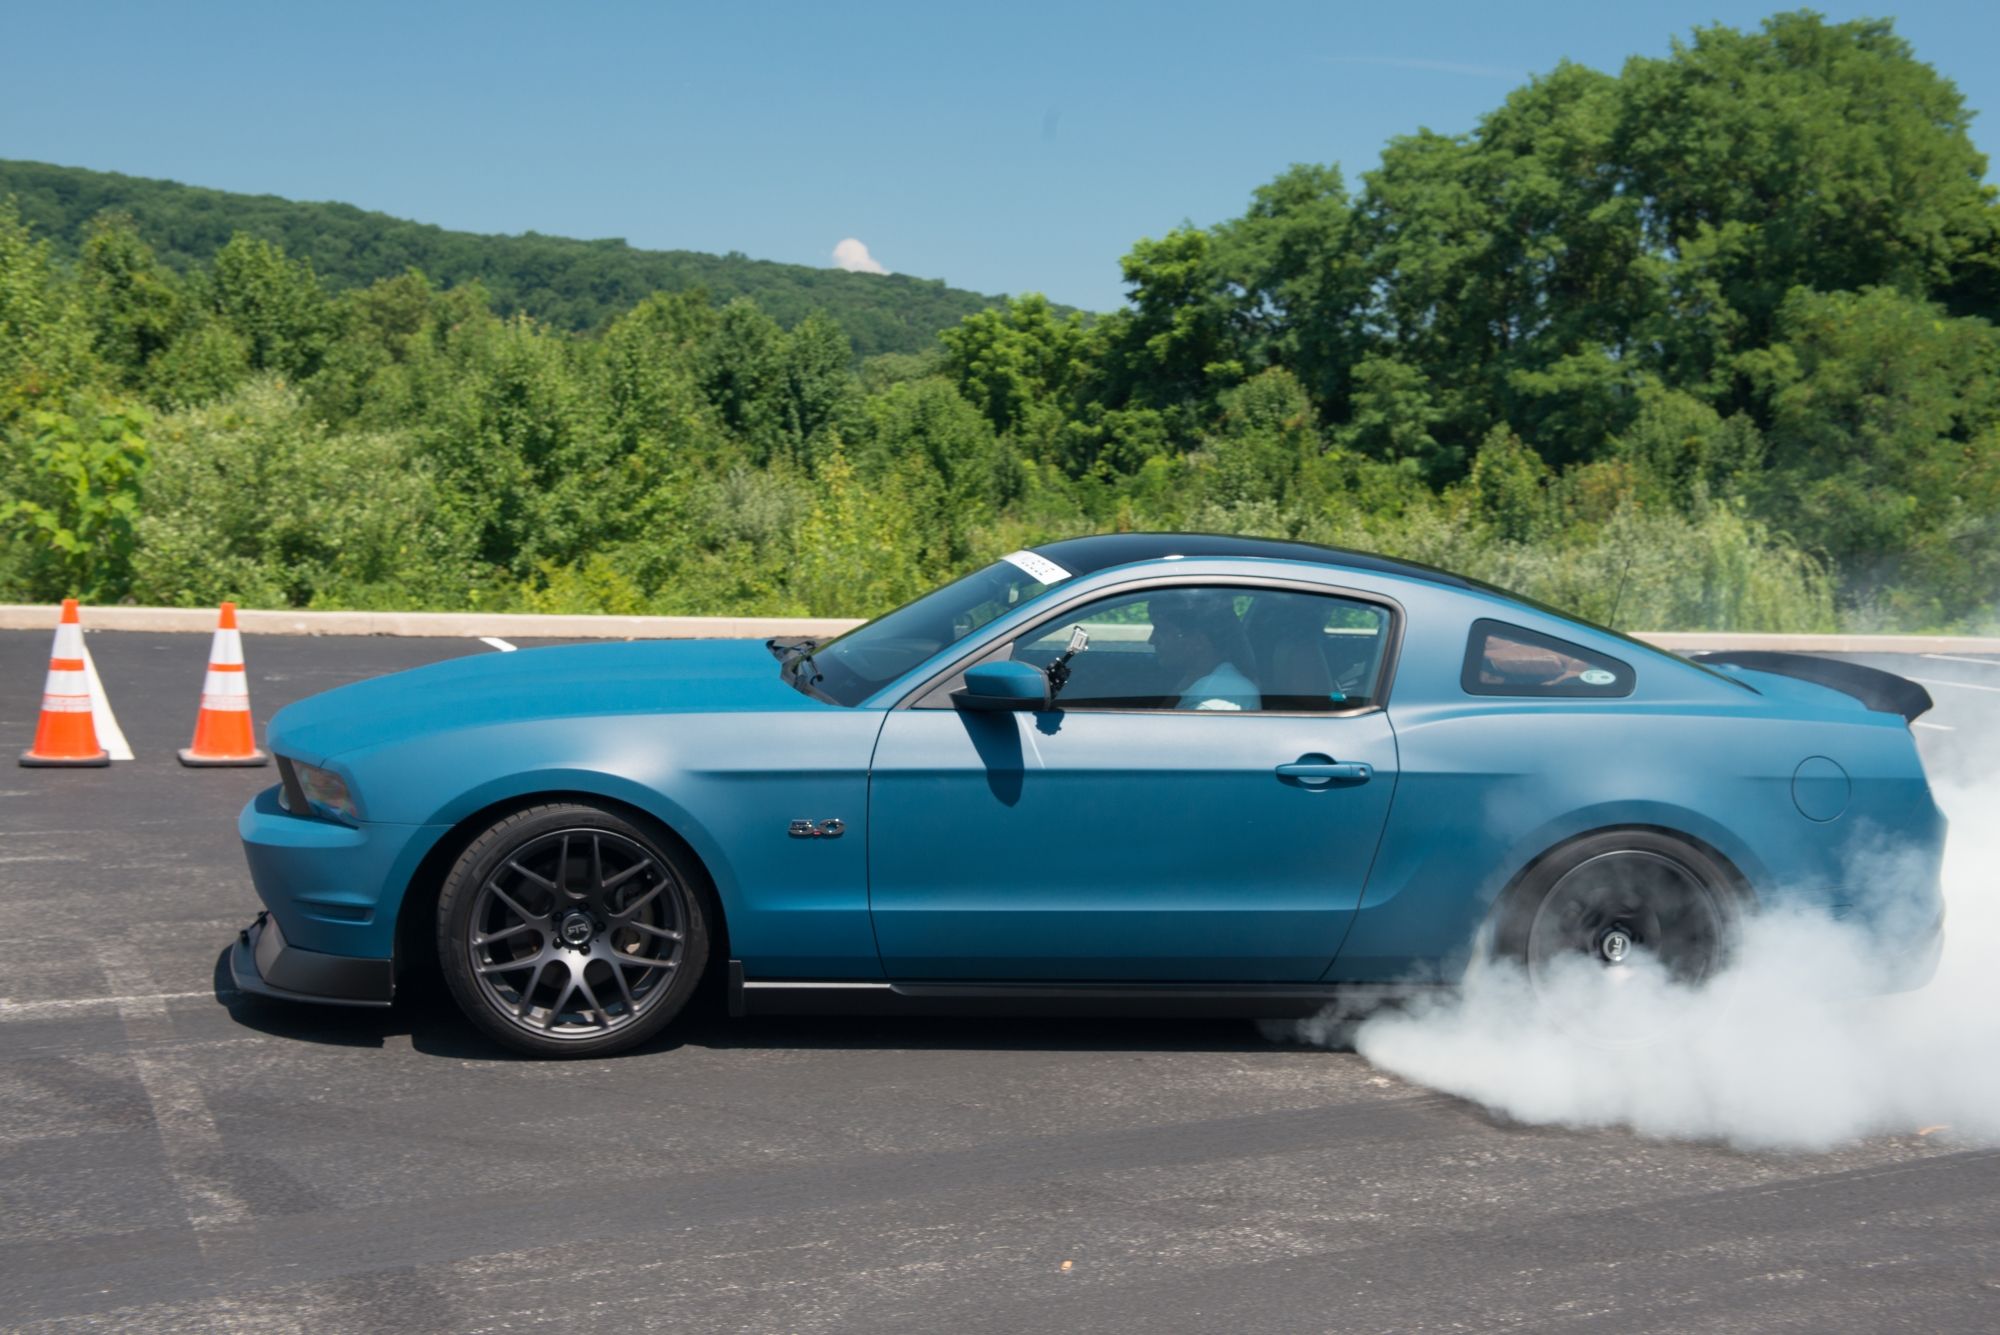 2011 ford mustang gt premium first test motor trend for Motor trend on demand problems